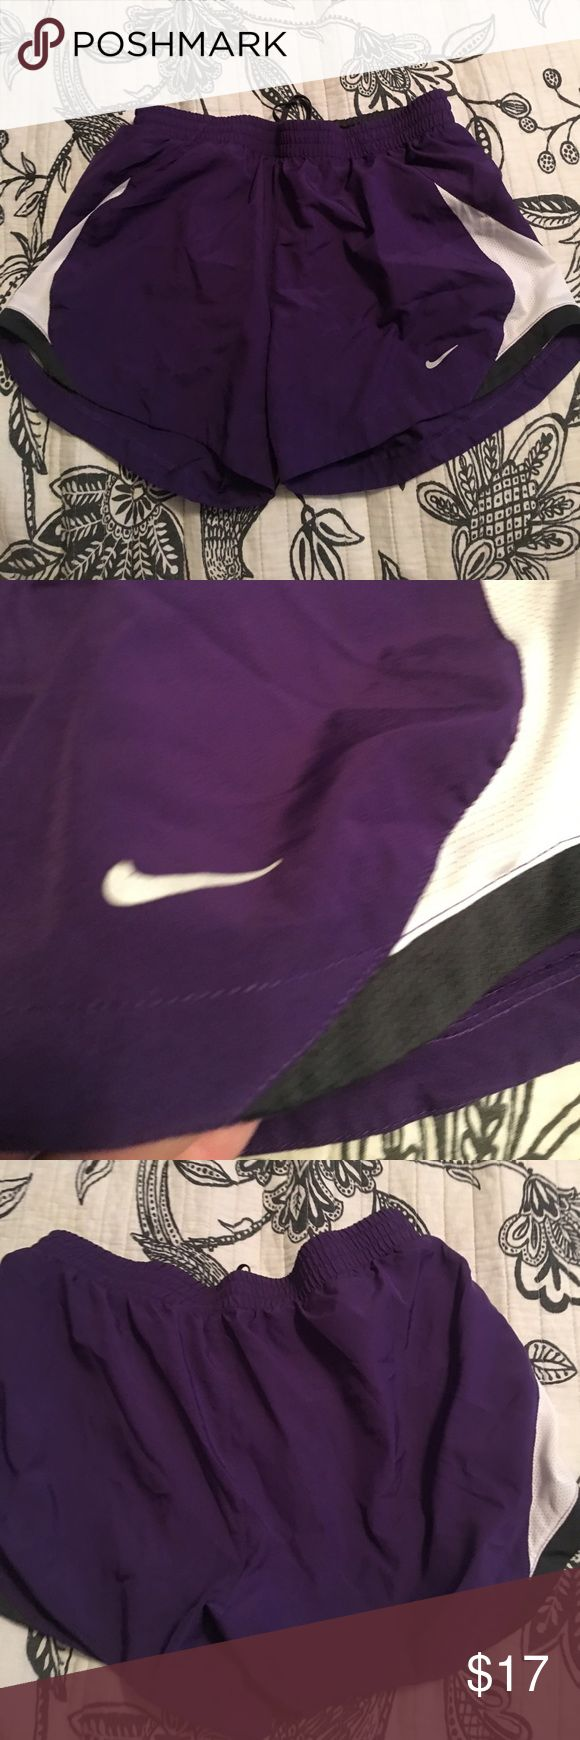 Nike tempo short size small purple Nike deep purple tempo run shorts. Nike heck on front is peeling a bit. Shorts